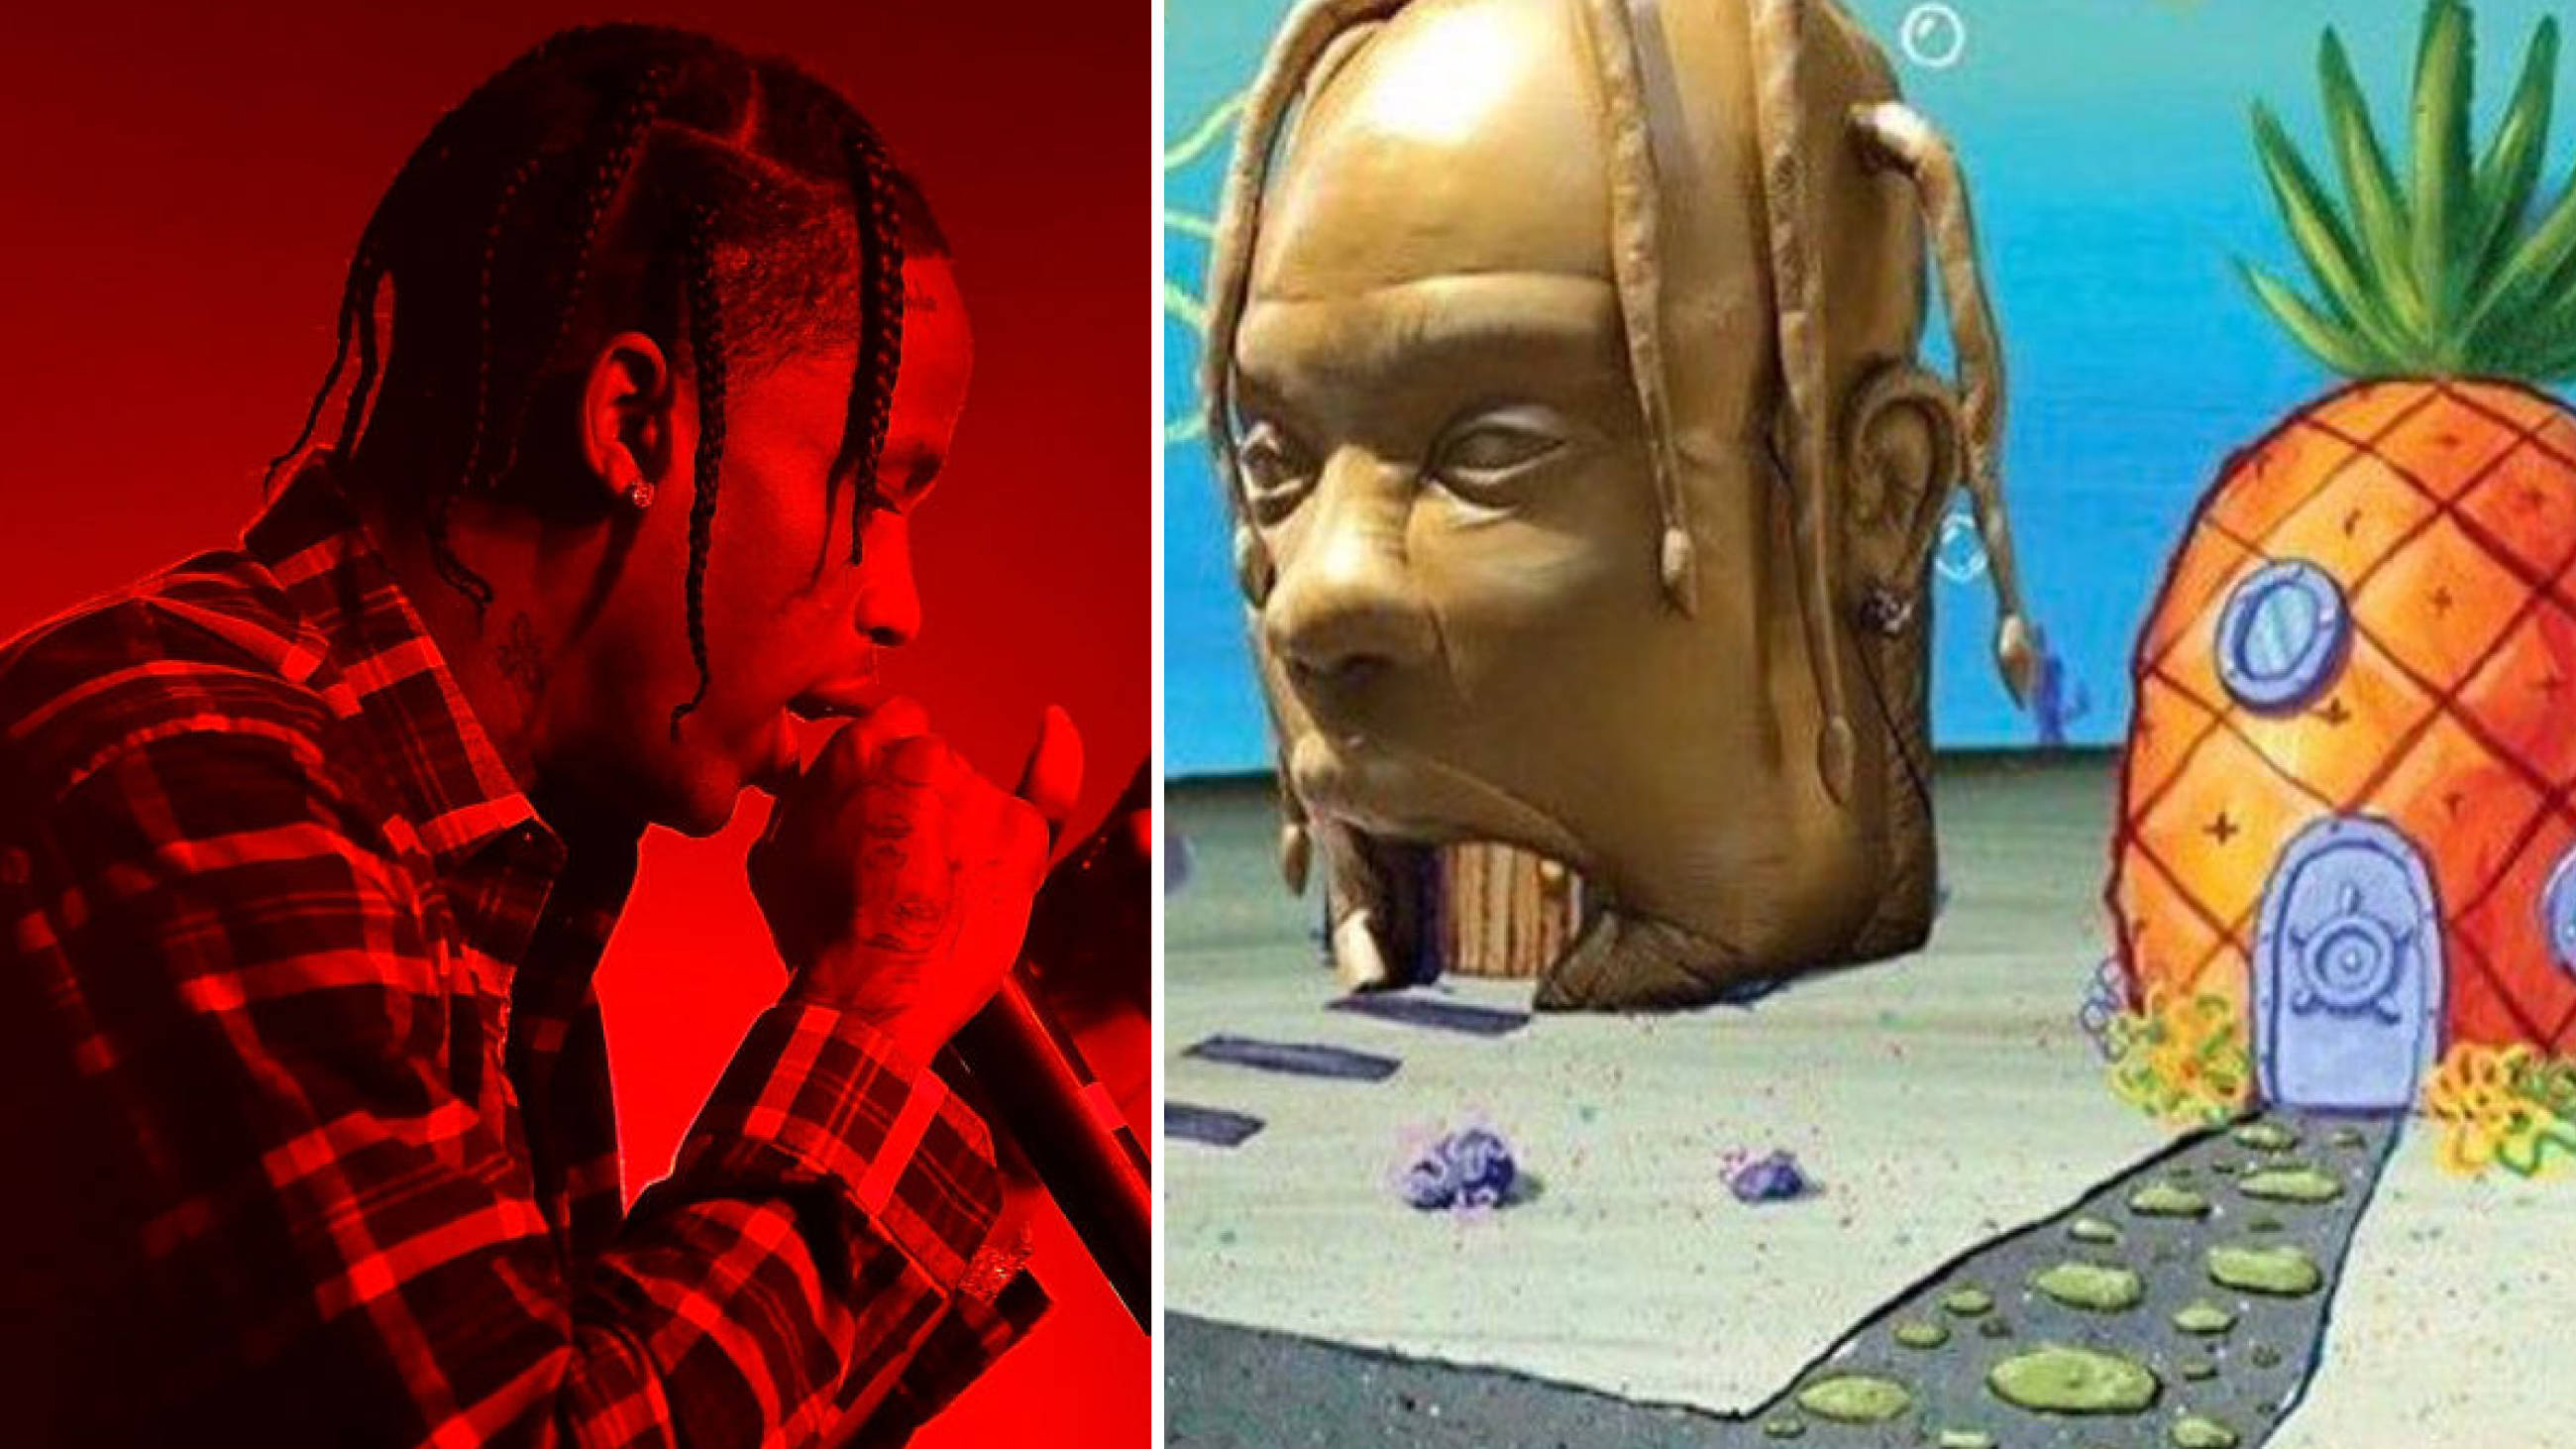 Travis Scott's 'Astroworld' Album Cover Is Already A